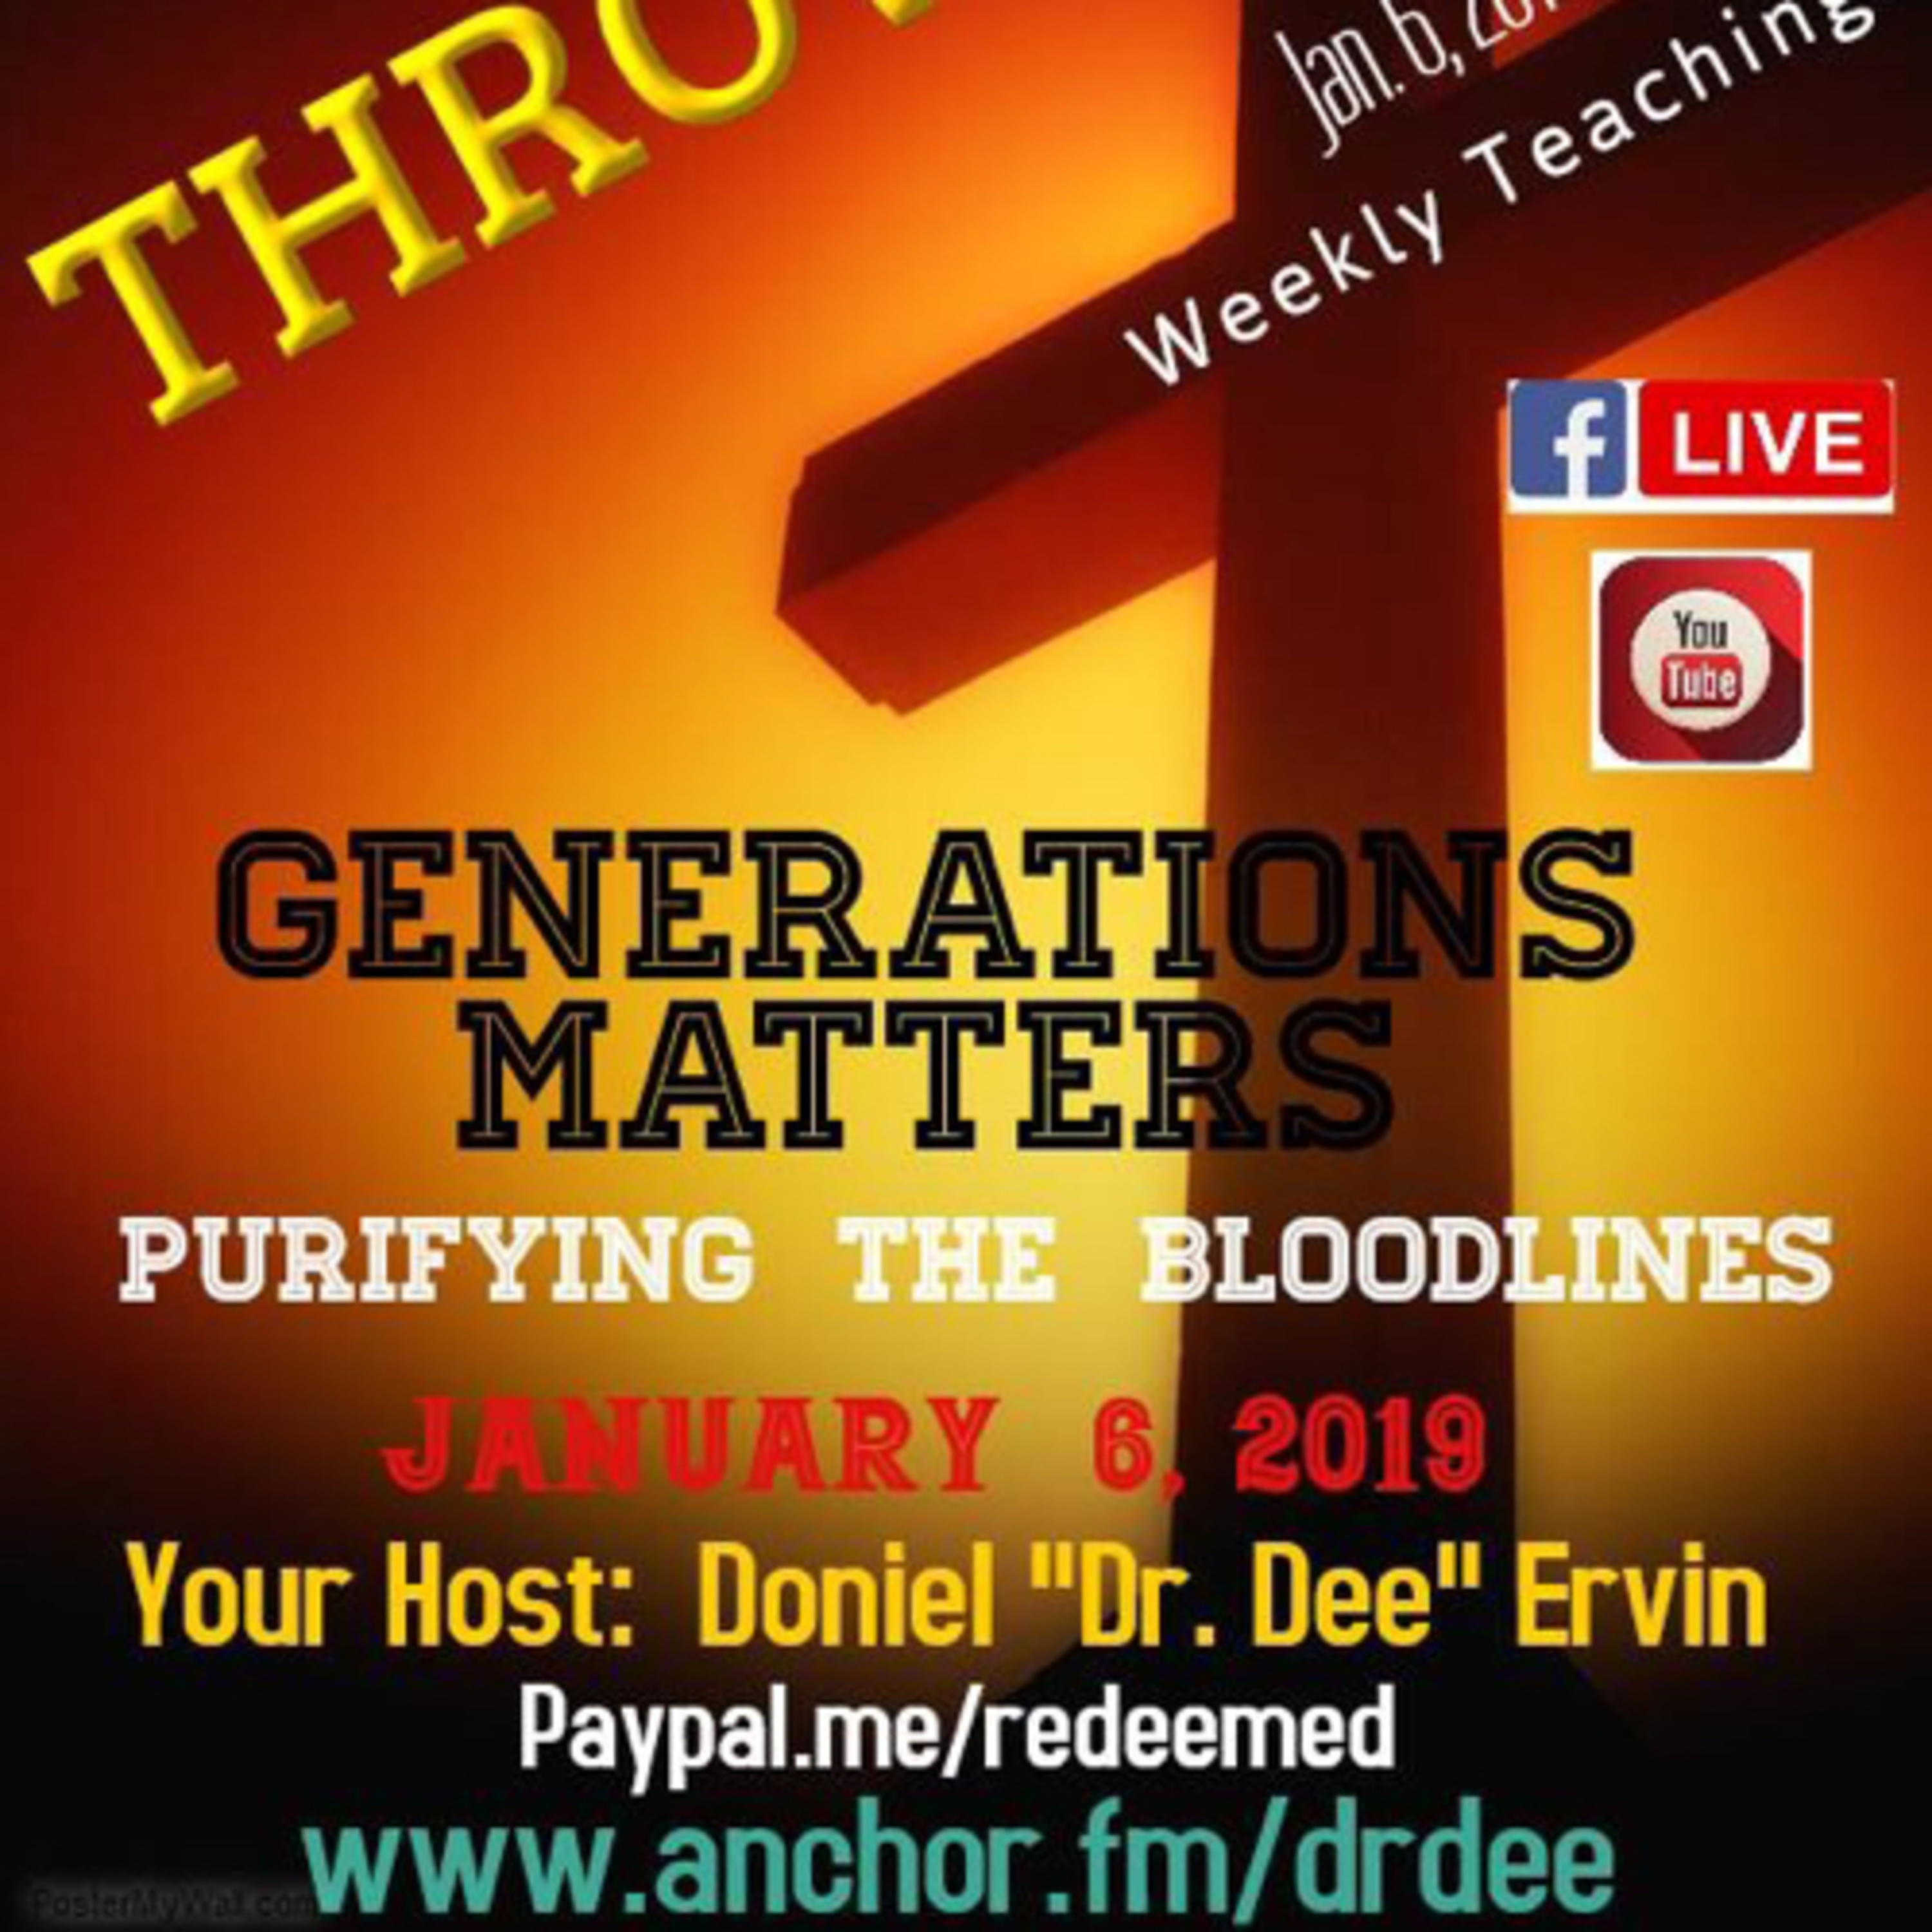 TheReal GenerationMatters: PurifyingtheBloodlines:Fear